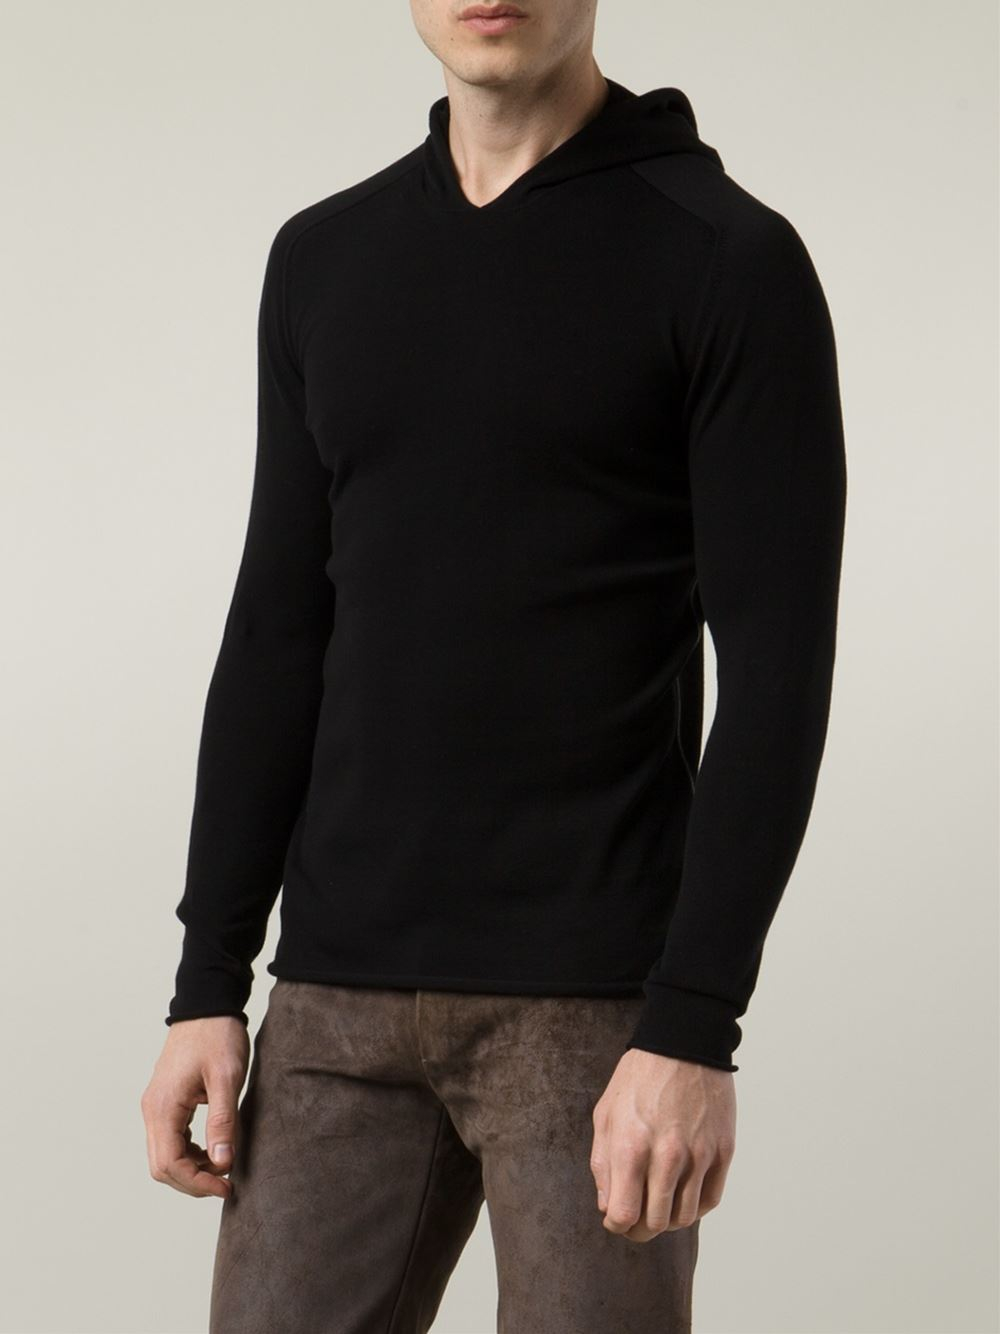 Cashmere Sweaters For Men